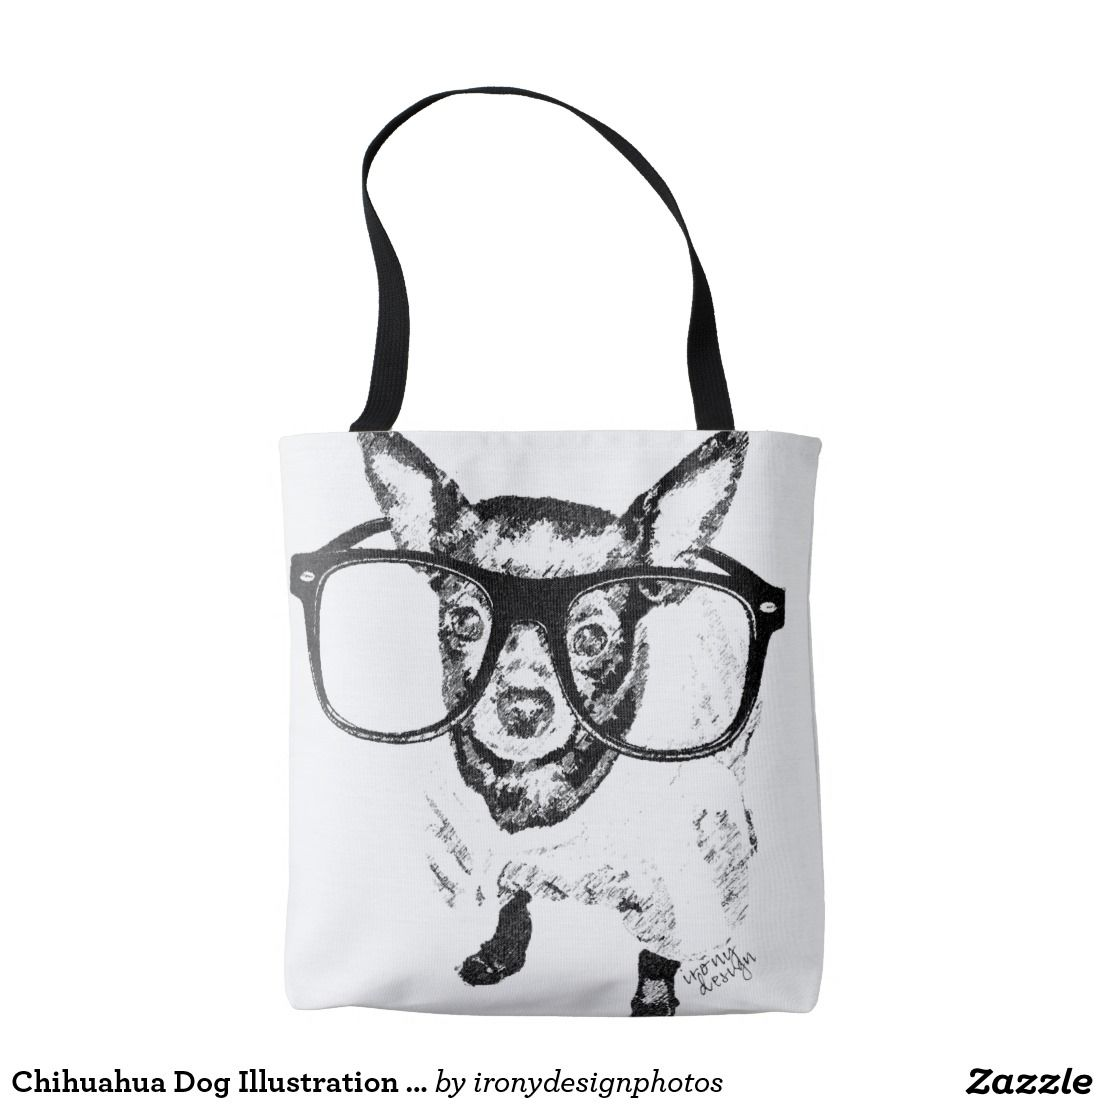 Chihuahua dog illustration drawing tote bags a cute black and white